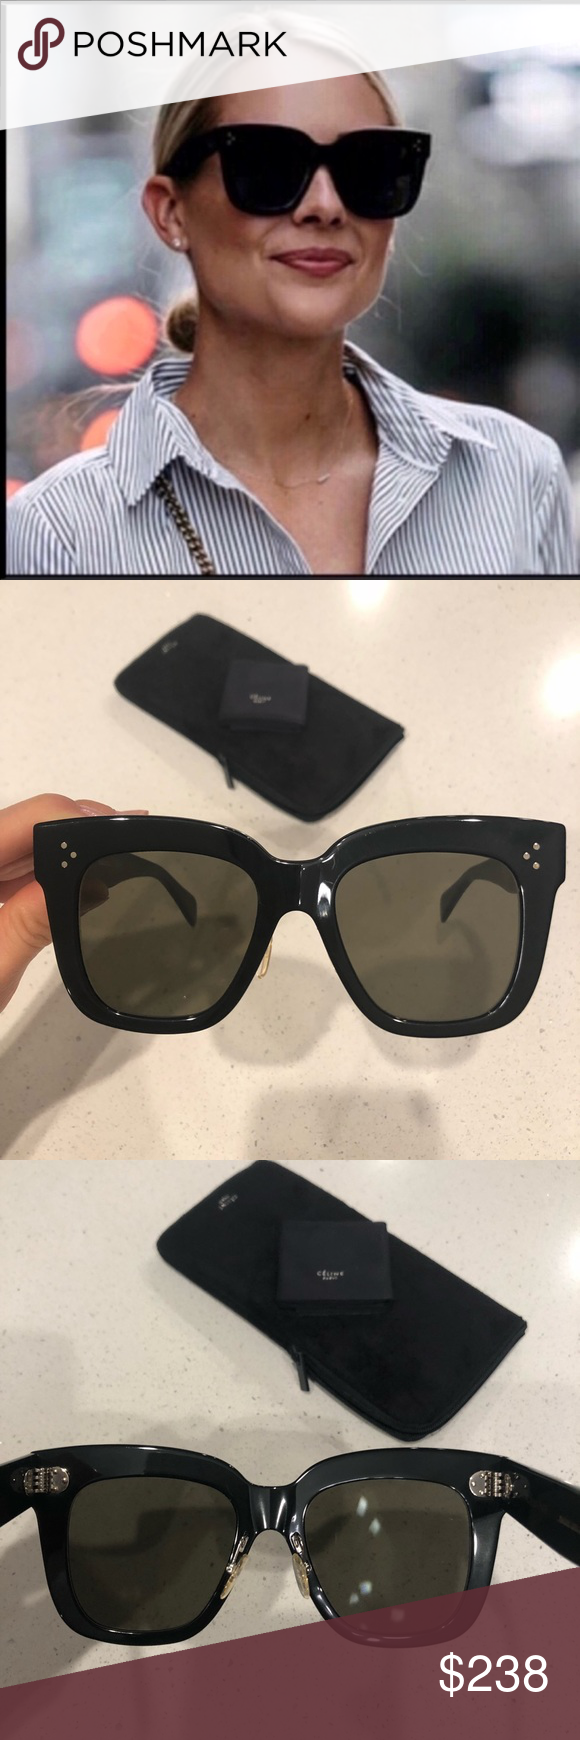 212fb330713 Celine sunglasses   Celine 41444 s Kim Black grey sunglasses New. 100%  authentic guaranteed. No scratches on the lenses. Some light marks on the  frames ...